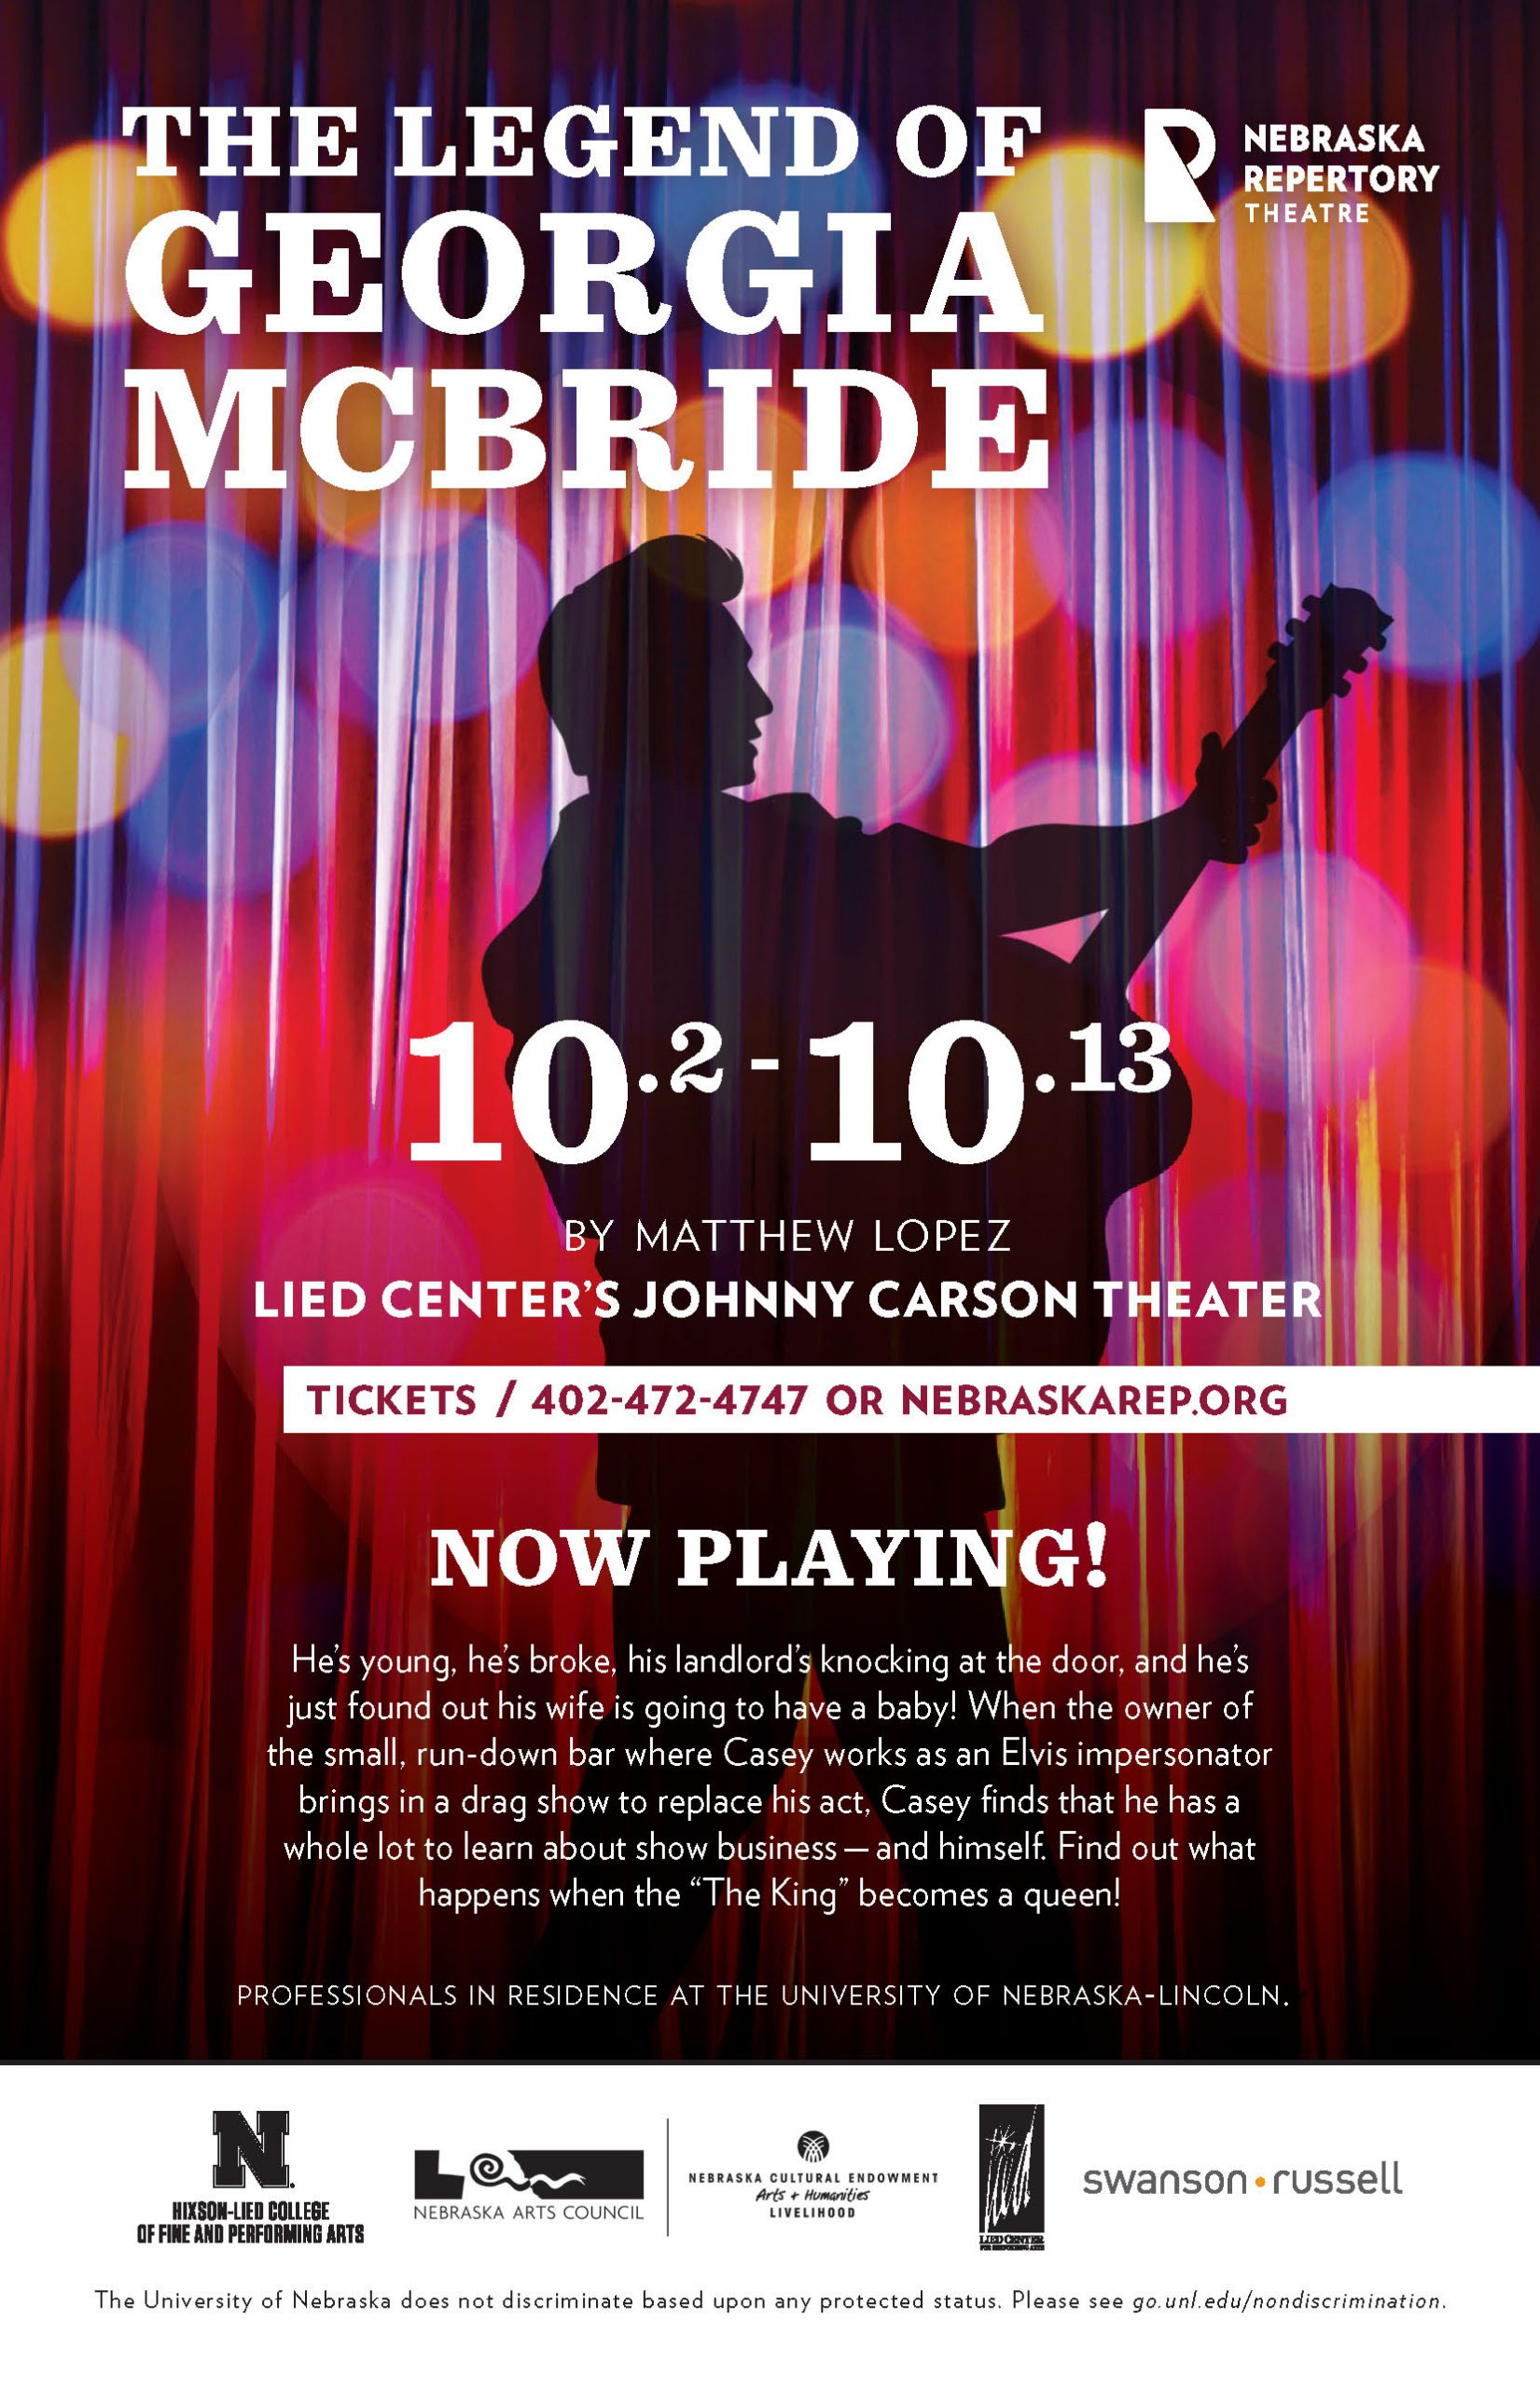 A poster with the title 'The Legend of Georgia McBride' featuring a silhouette of a man playing a guitar in front of a red curtain. The man resembles Elvis Presley.